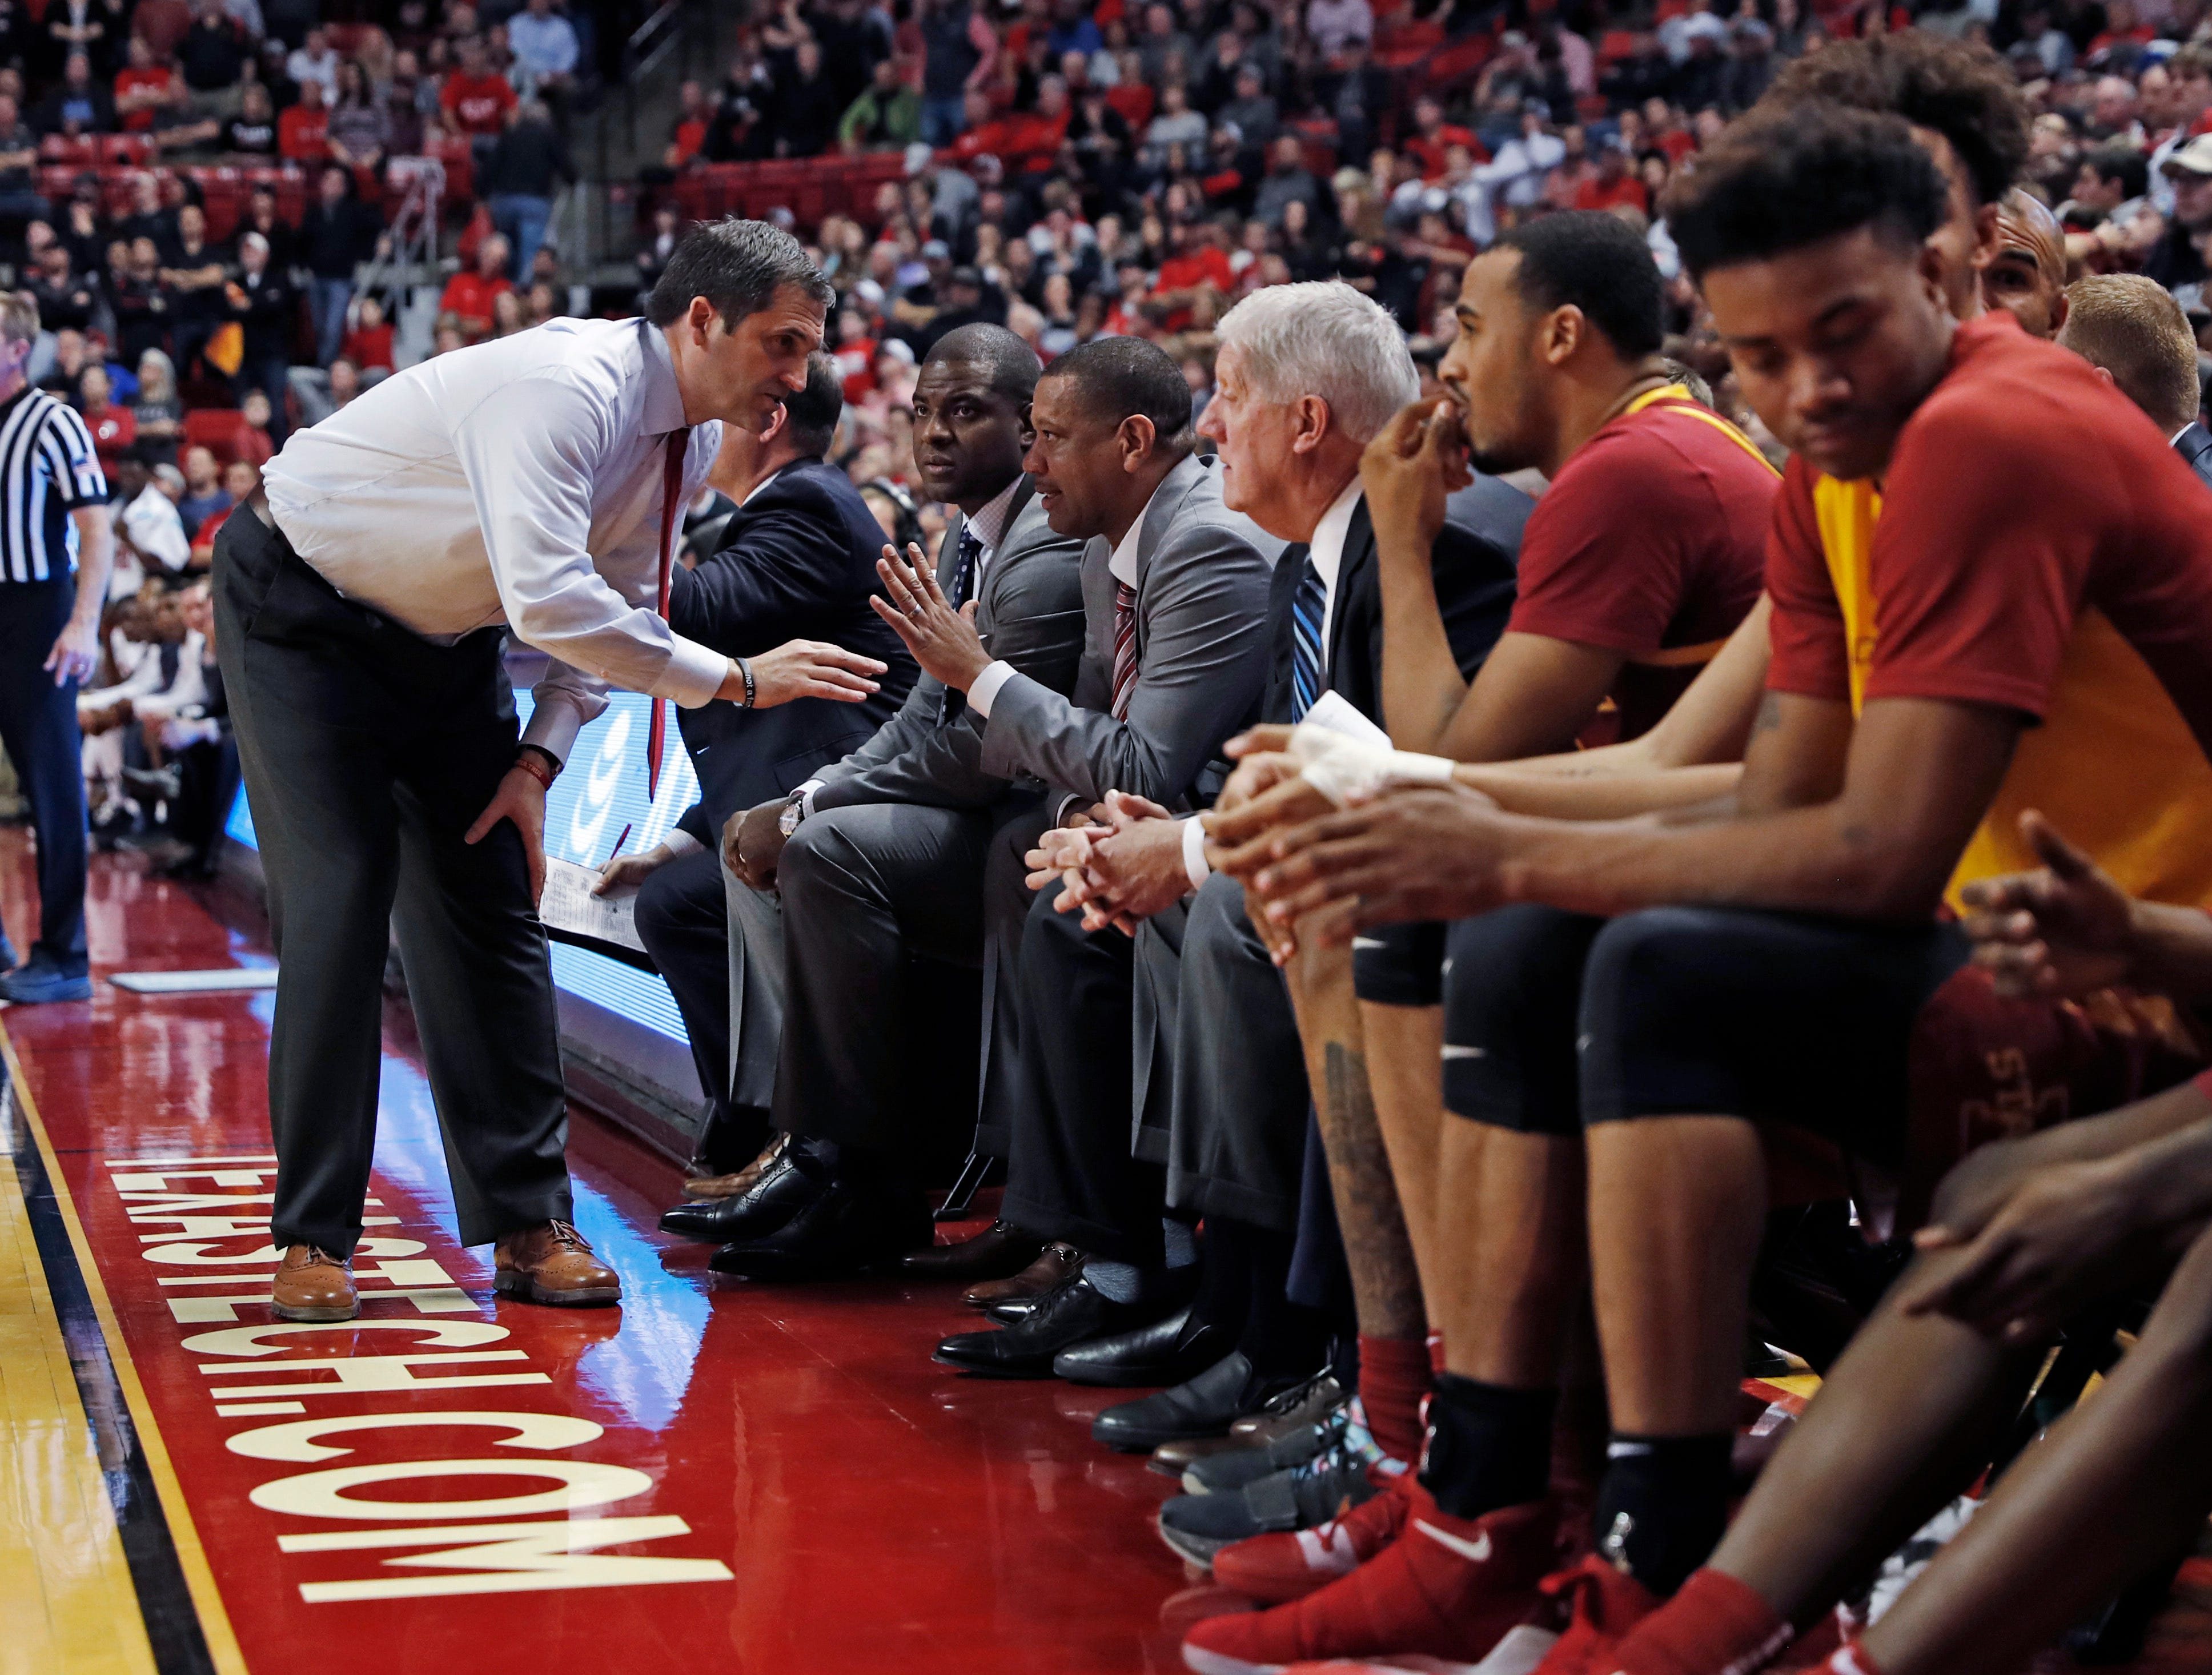 Iowa State coach Steve Prohm talks to his assistants during the second half of an NCAA college basketball game against Texas Tech, Wednesday, Jan. 16, 2019, in Lubbock, Texas.